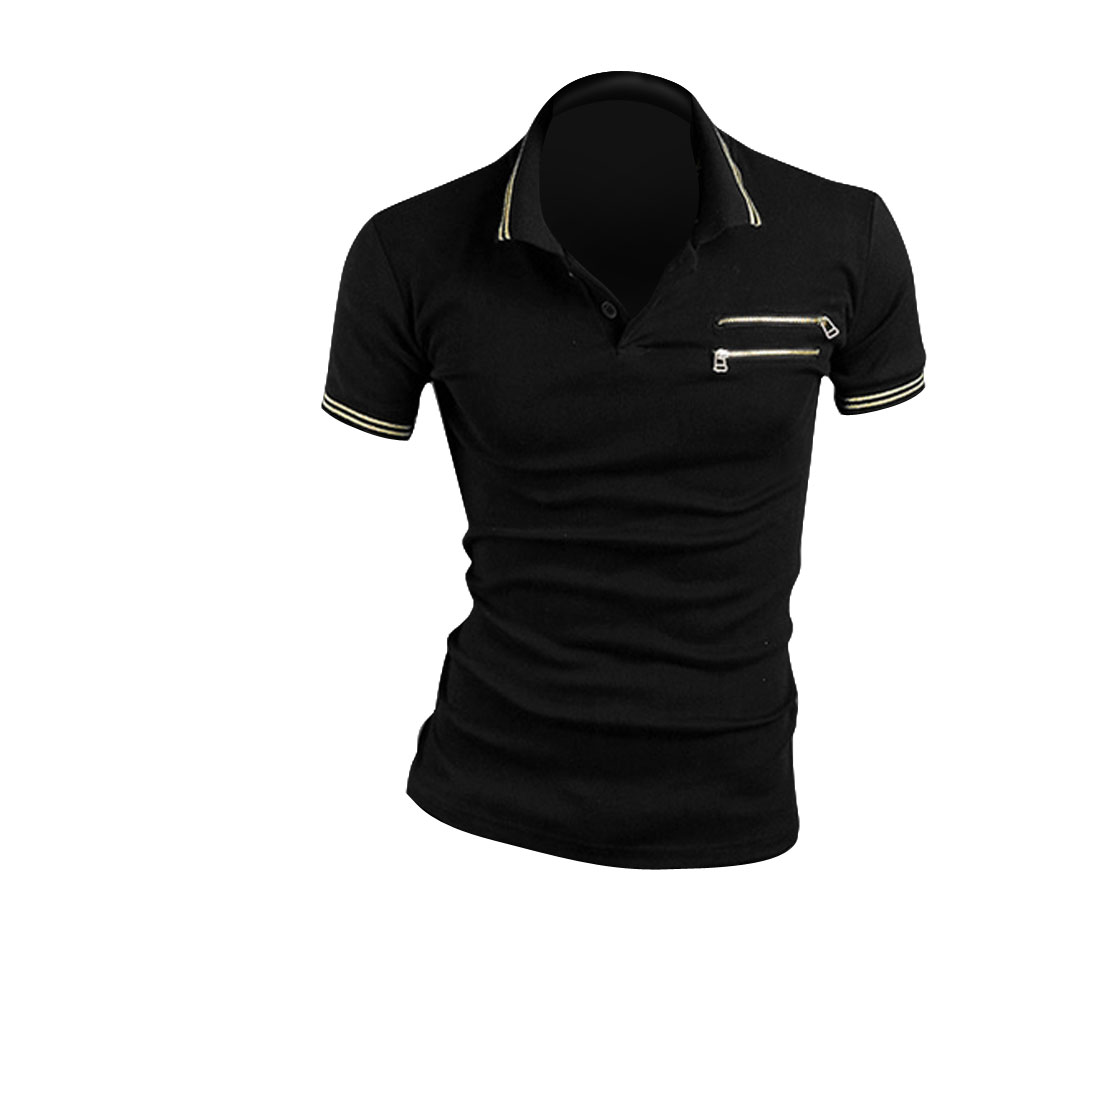 Man Korean Zippers Decor Short Sleeved Point Collar Shirt Black M